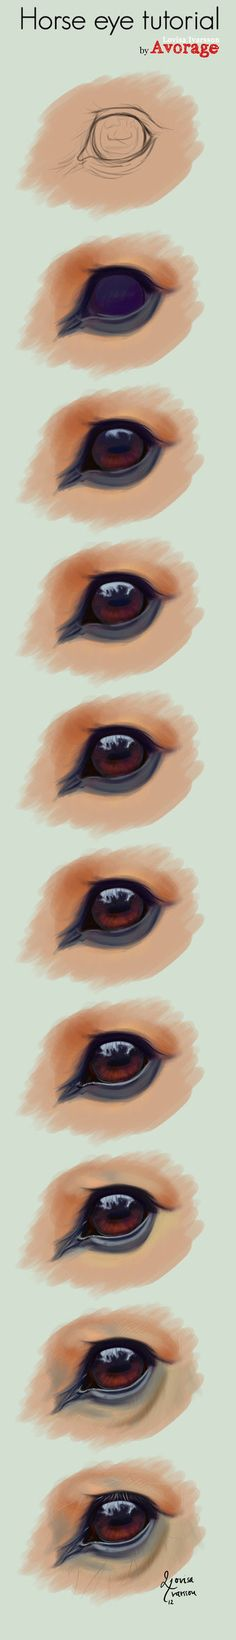 horse drawing tutorial horse eye. //No instructions on this, go by sight EL//